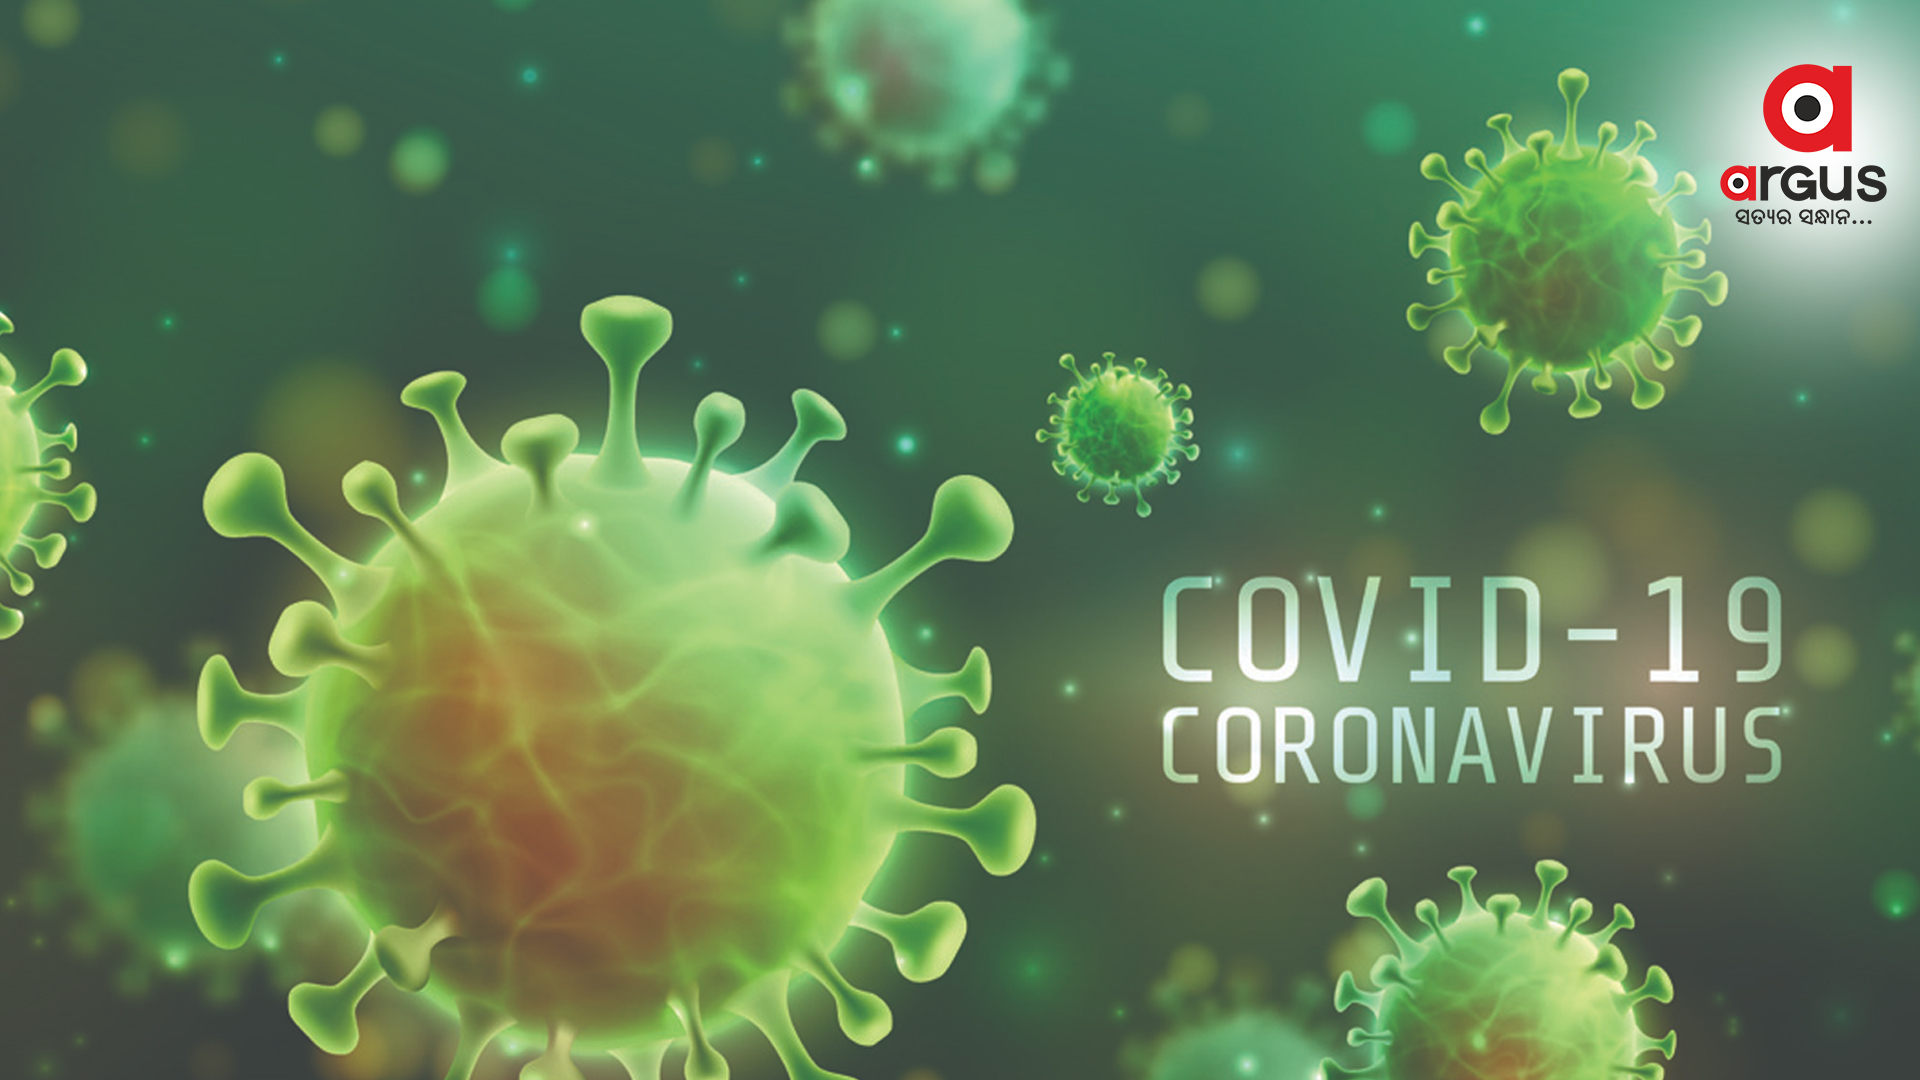 1709 more test positive for Covid-19 in Odisha, tally mounts to 291825